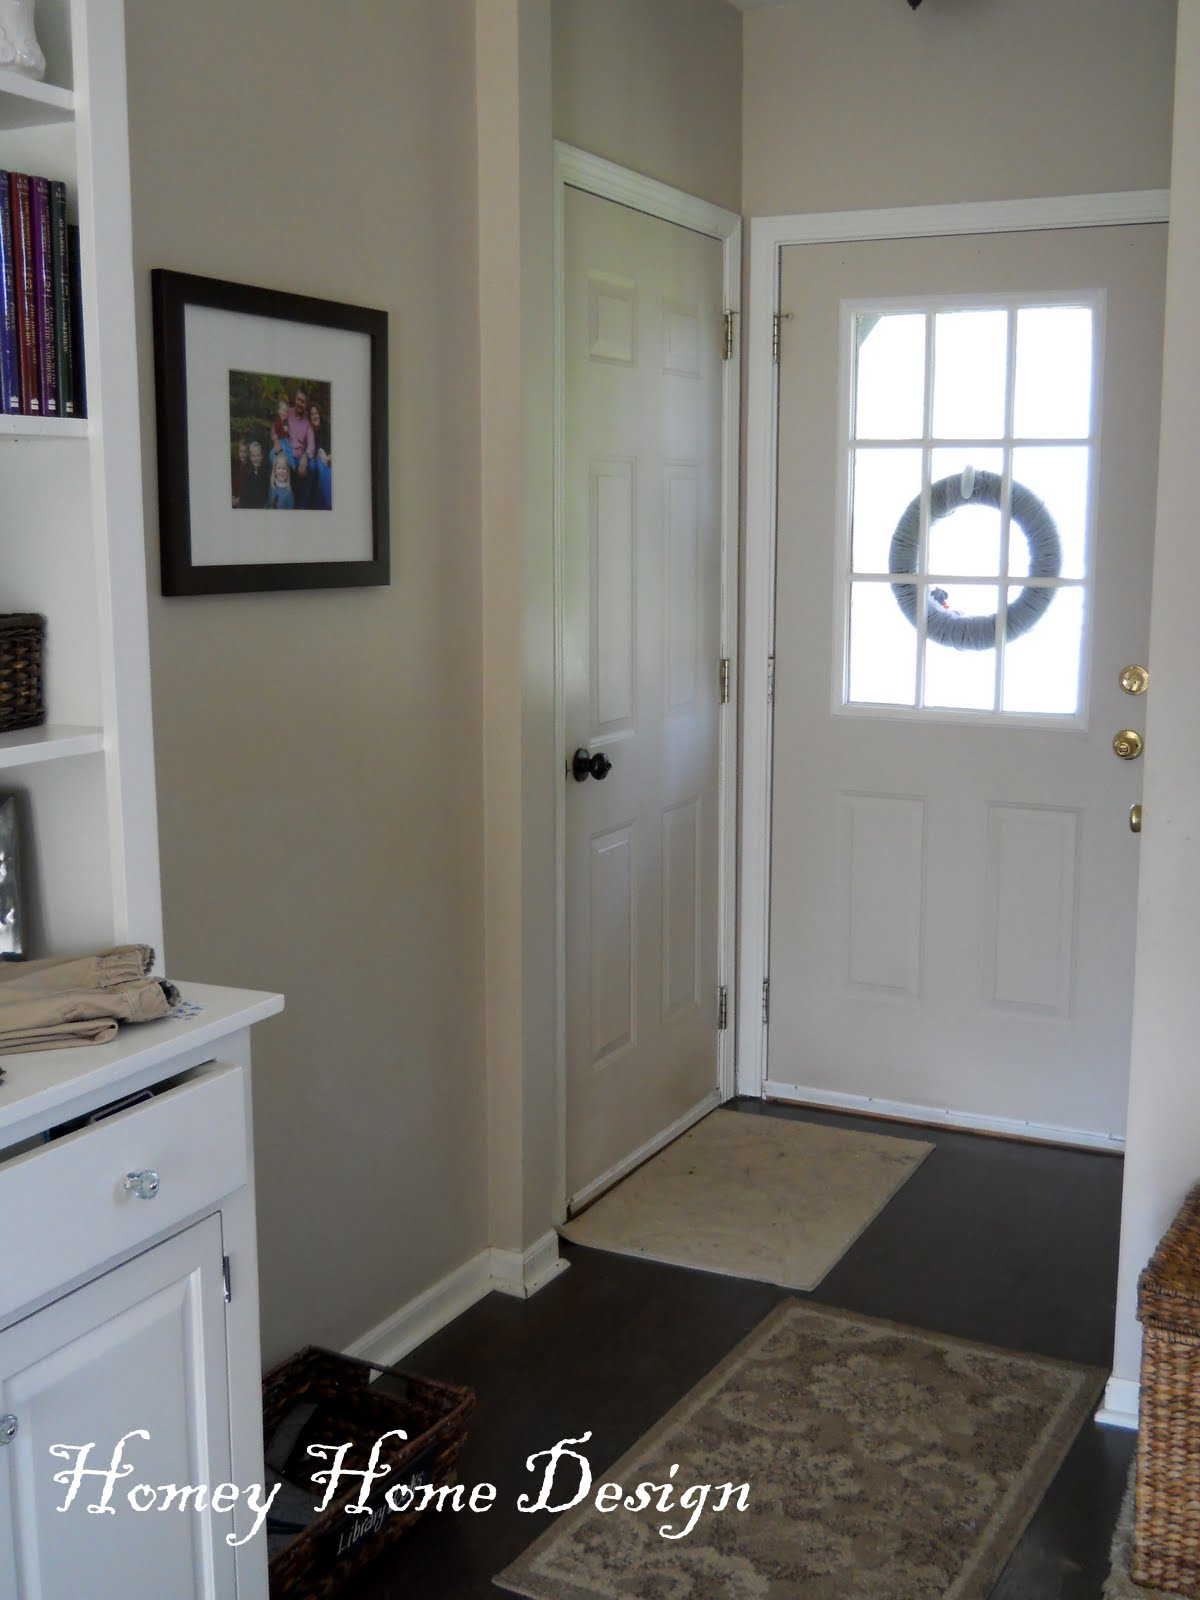 Homey Home Design Christmas In The Bathroom: Homey Home Design: Entryway Update And A Few Fun Projects